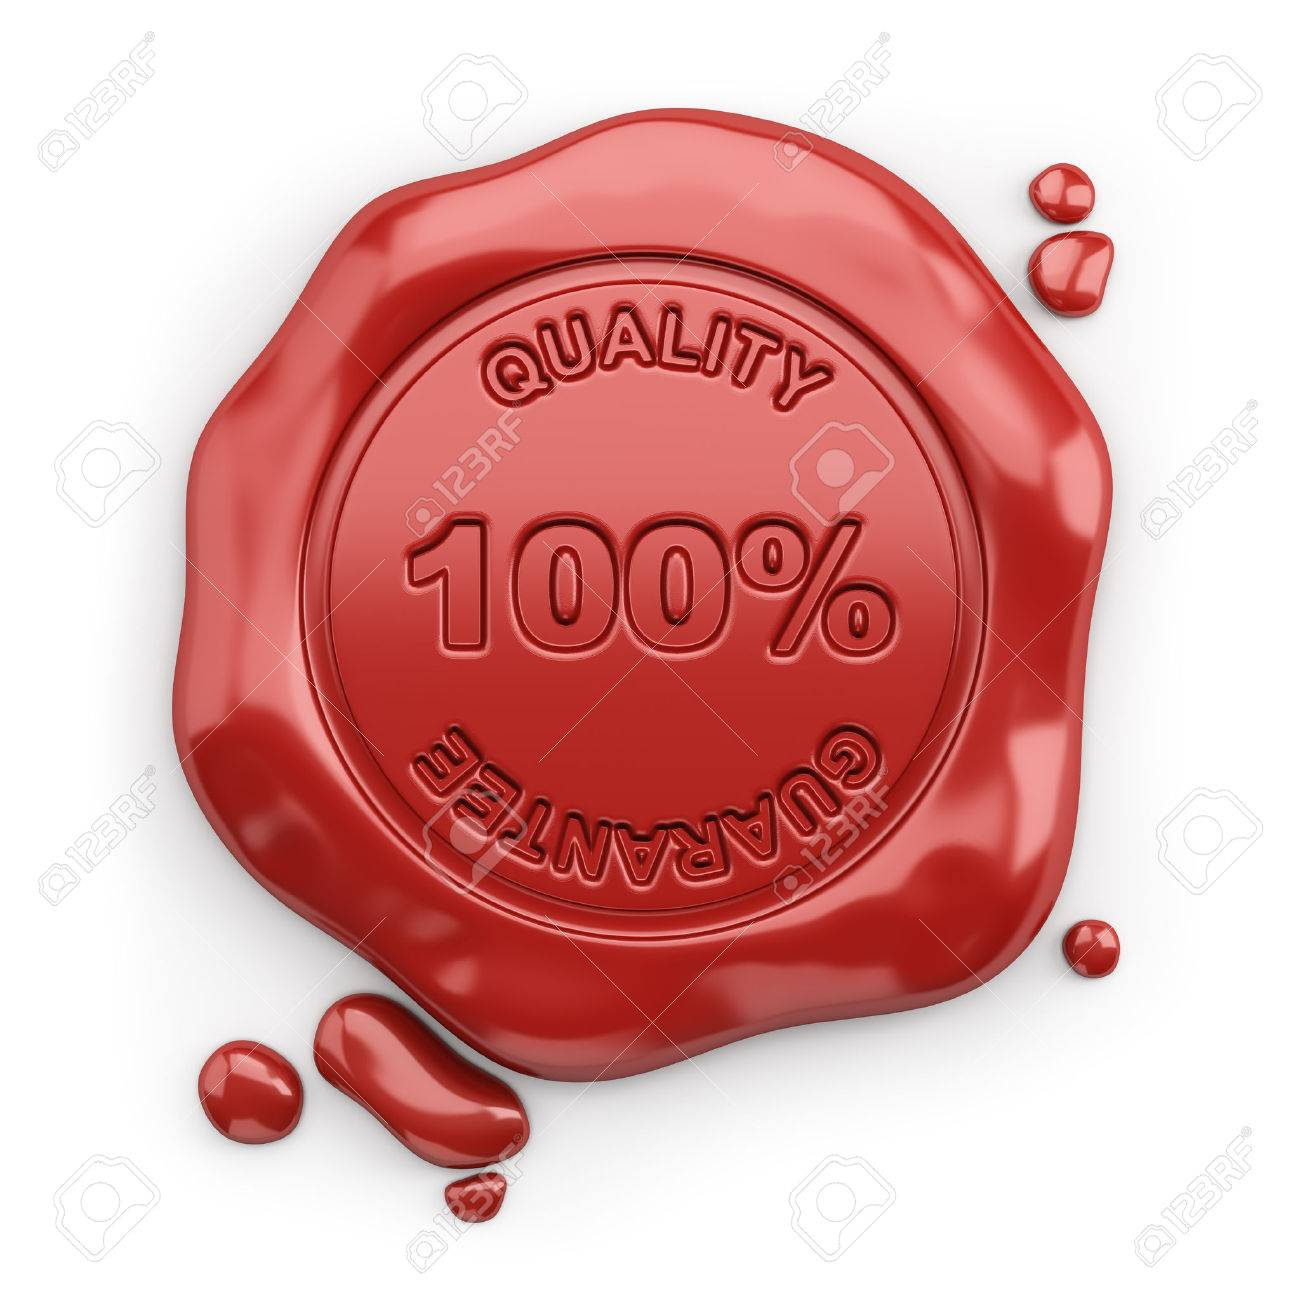 Wax seal with the inscription 100% quality guarantee. 3d image. White background. Stock Photo - 29756630